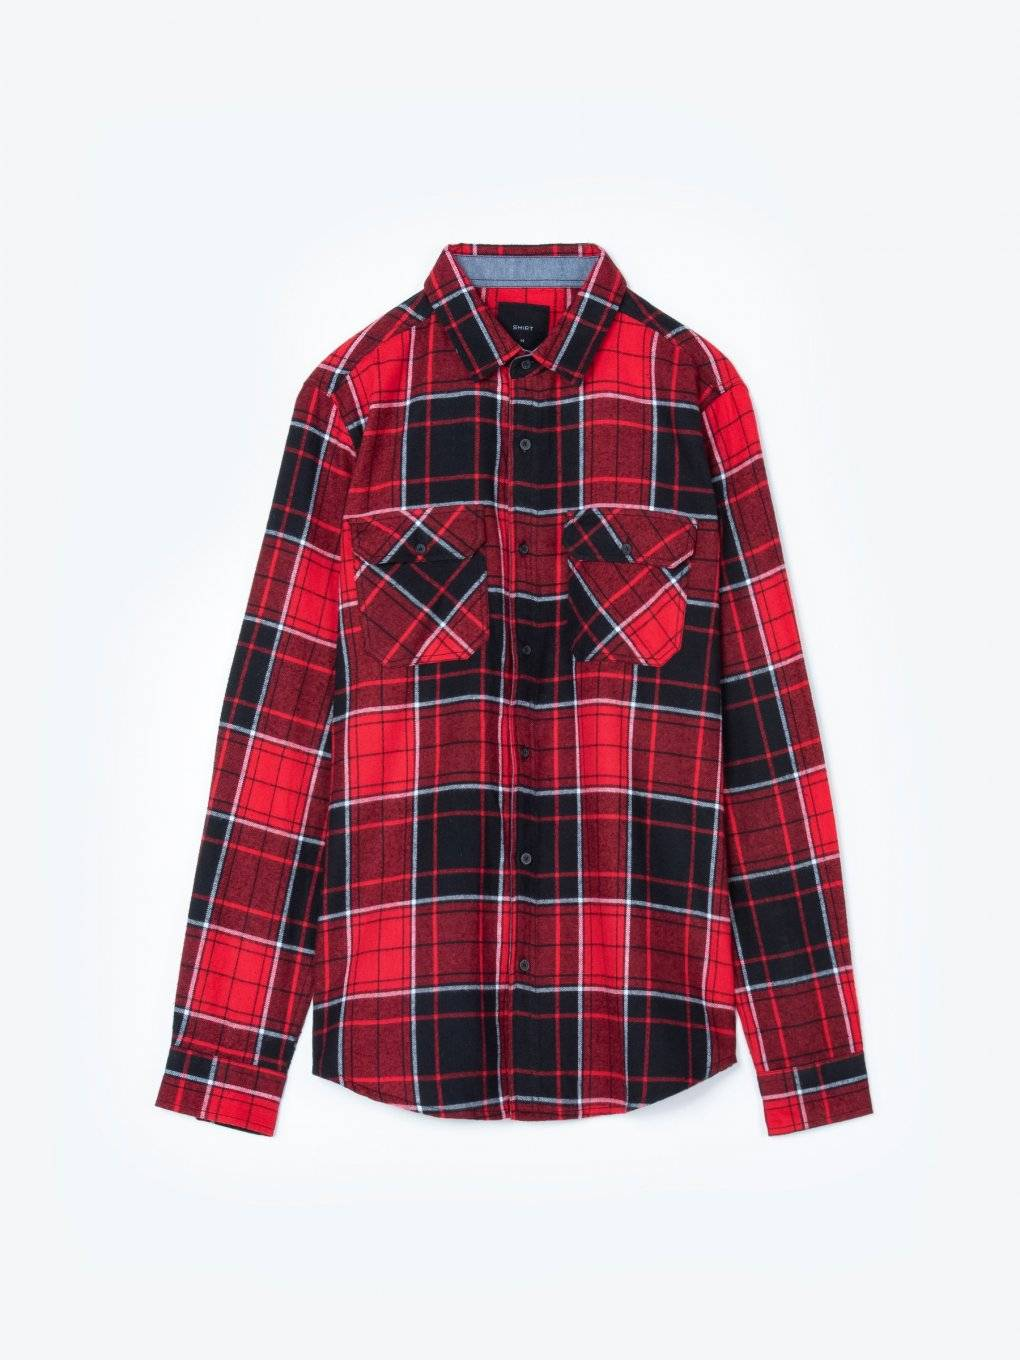 Regular fit plaid cotton shirt